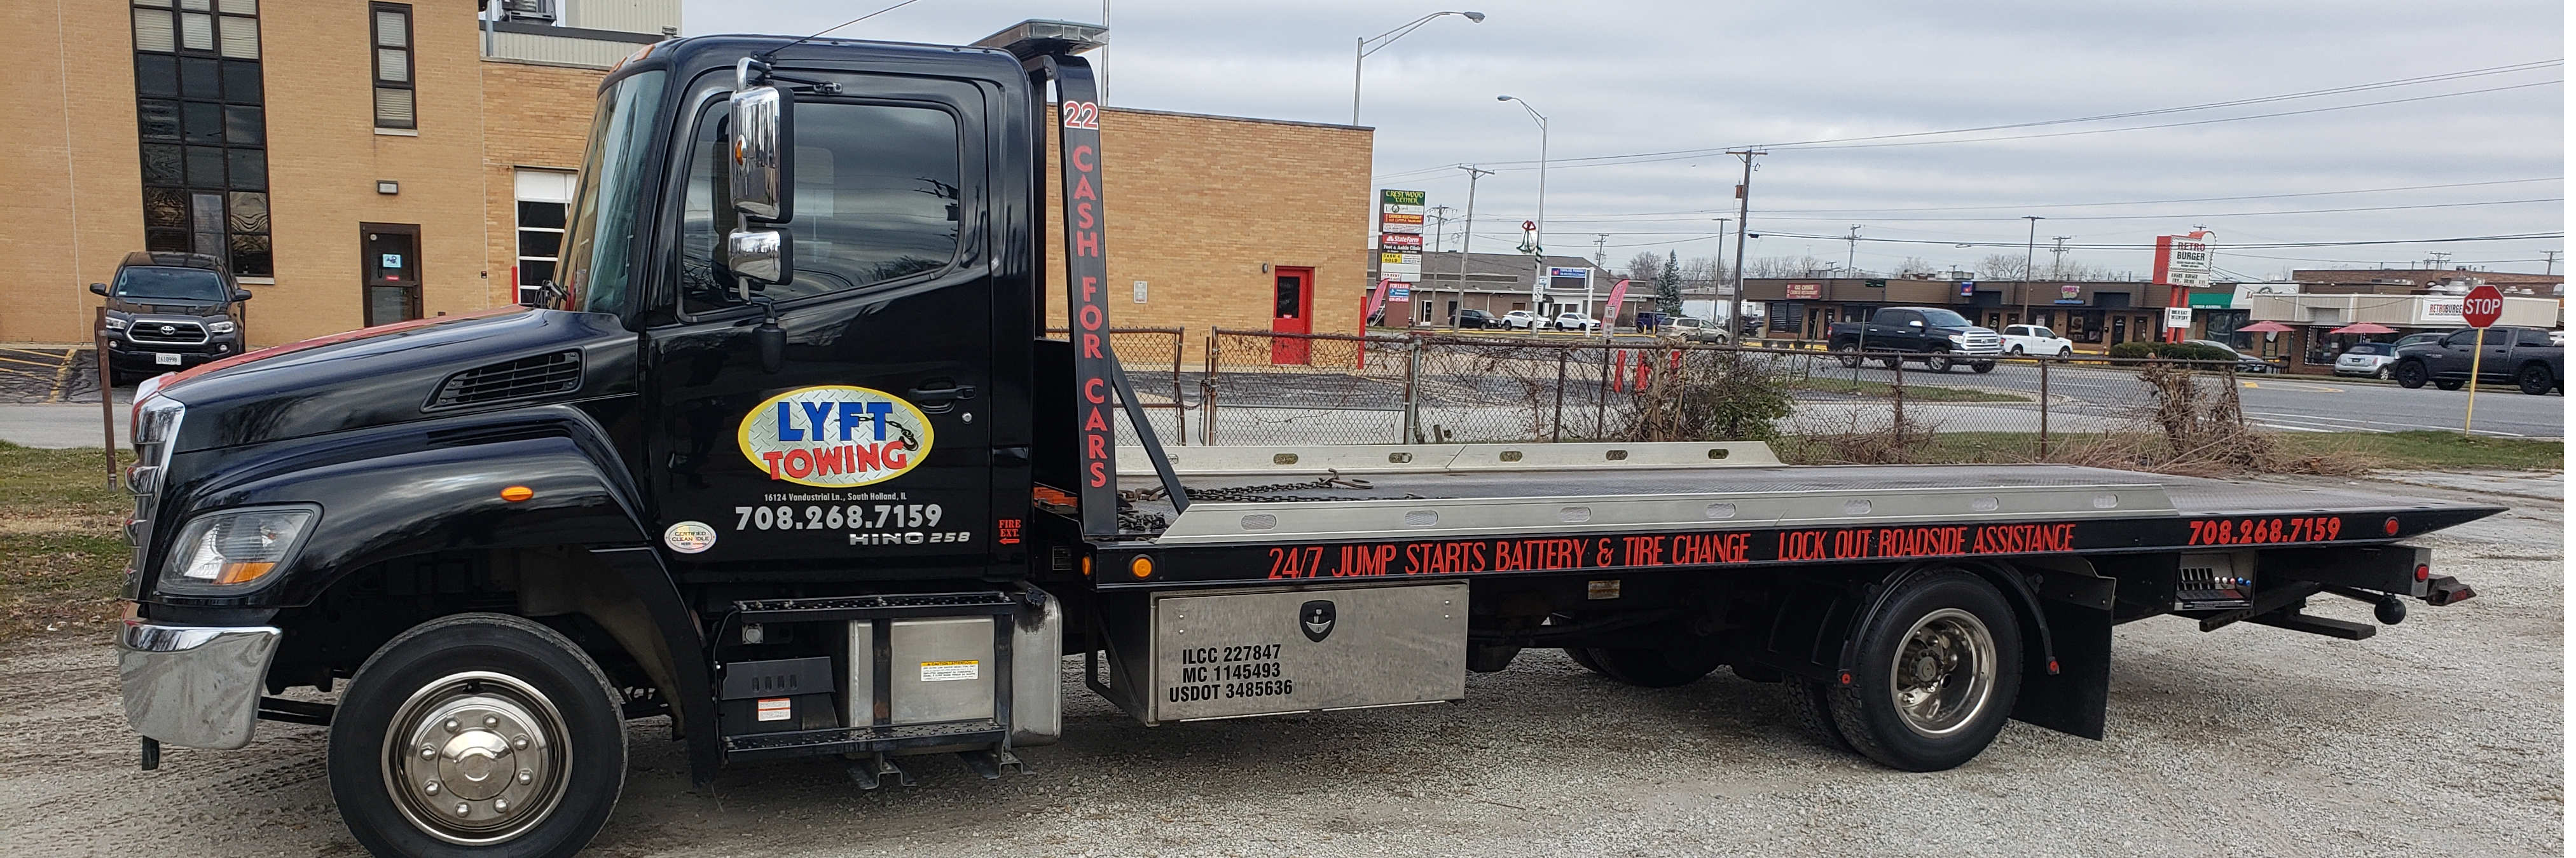 Lyft Towing  Towing.com Profile Banner